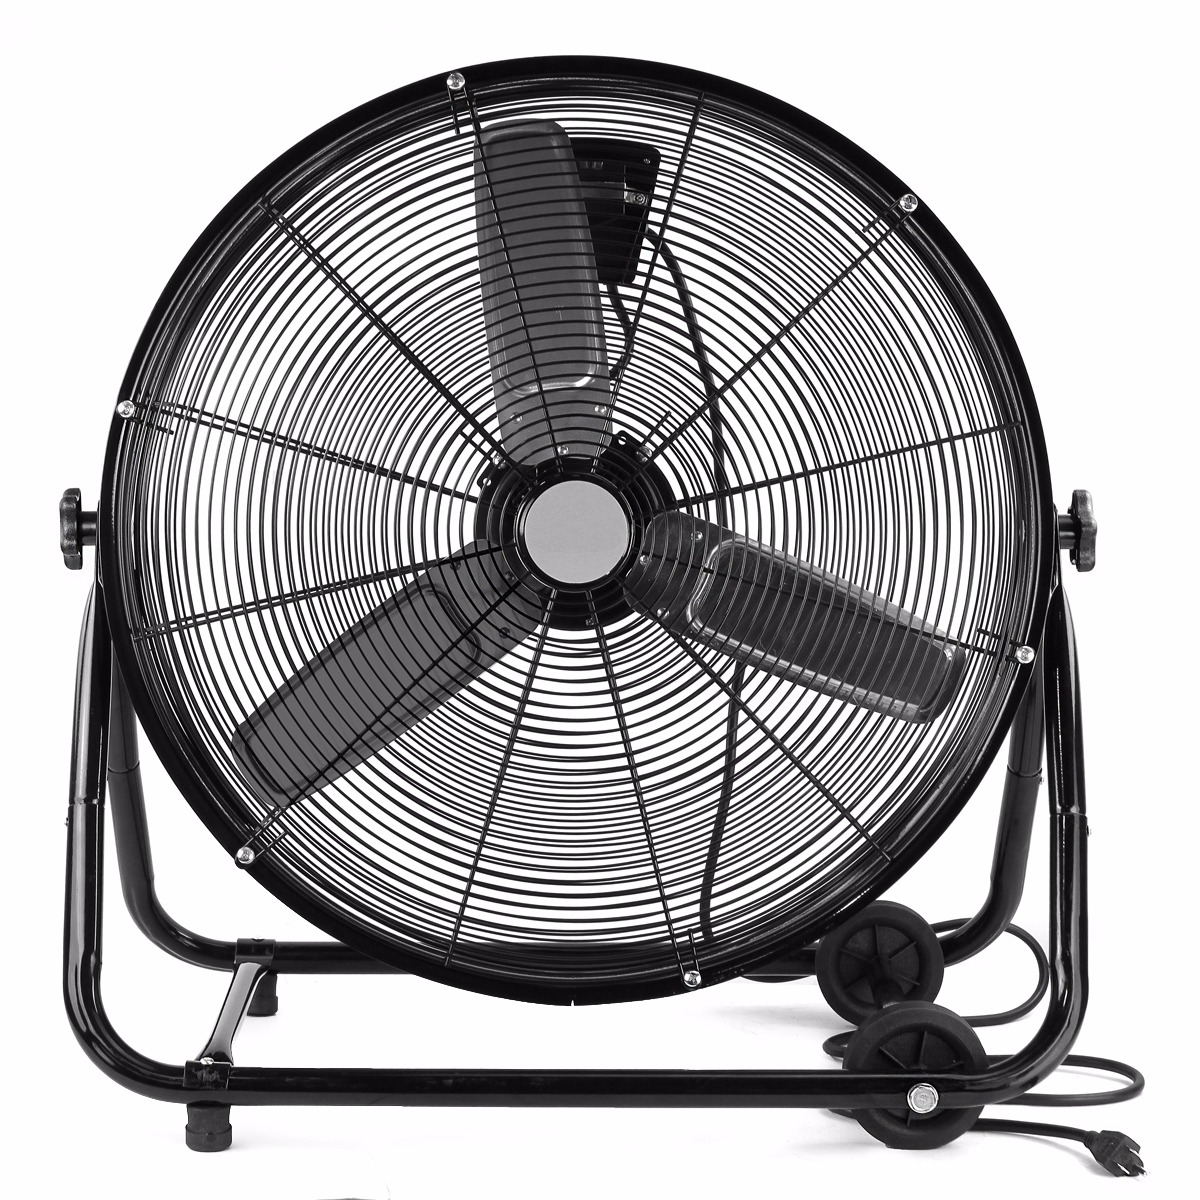 "XtremepowerUS 24"" Fan Rolling Drum Floor Shop Commercial Warehouse"